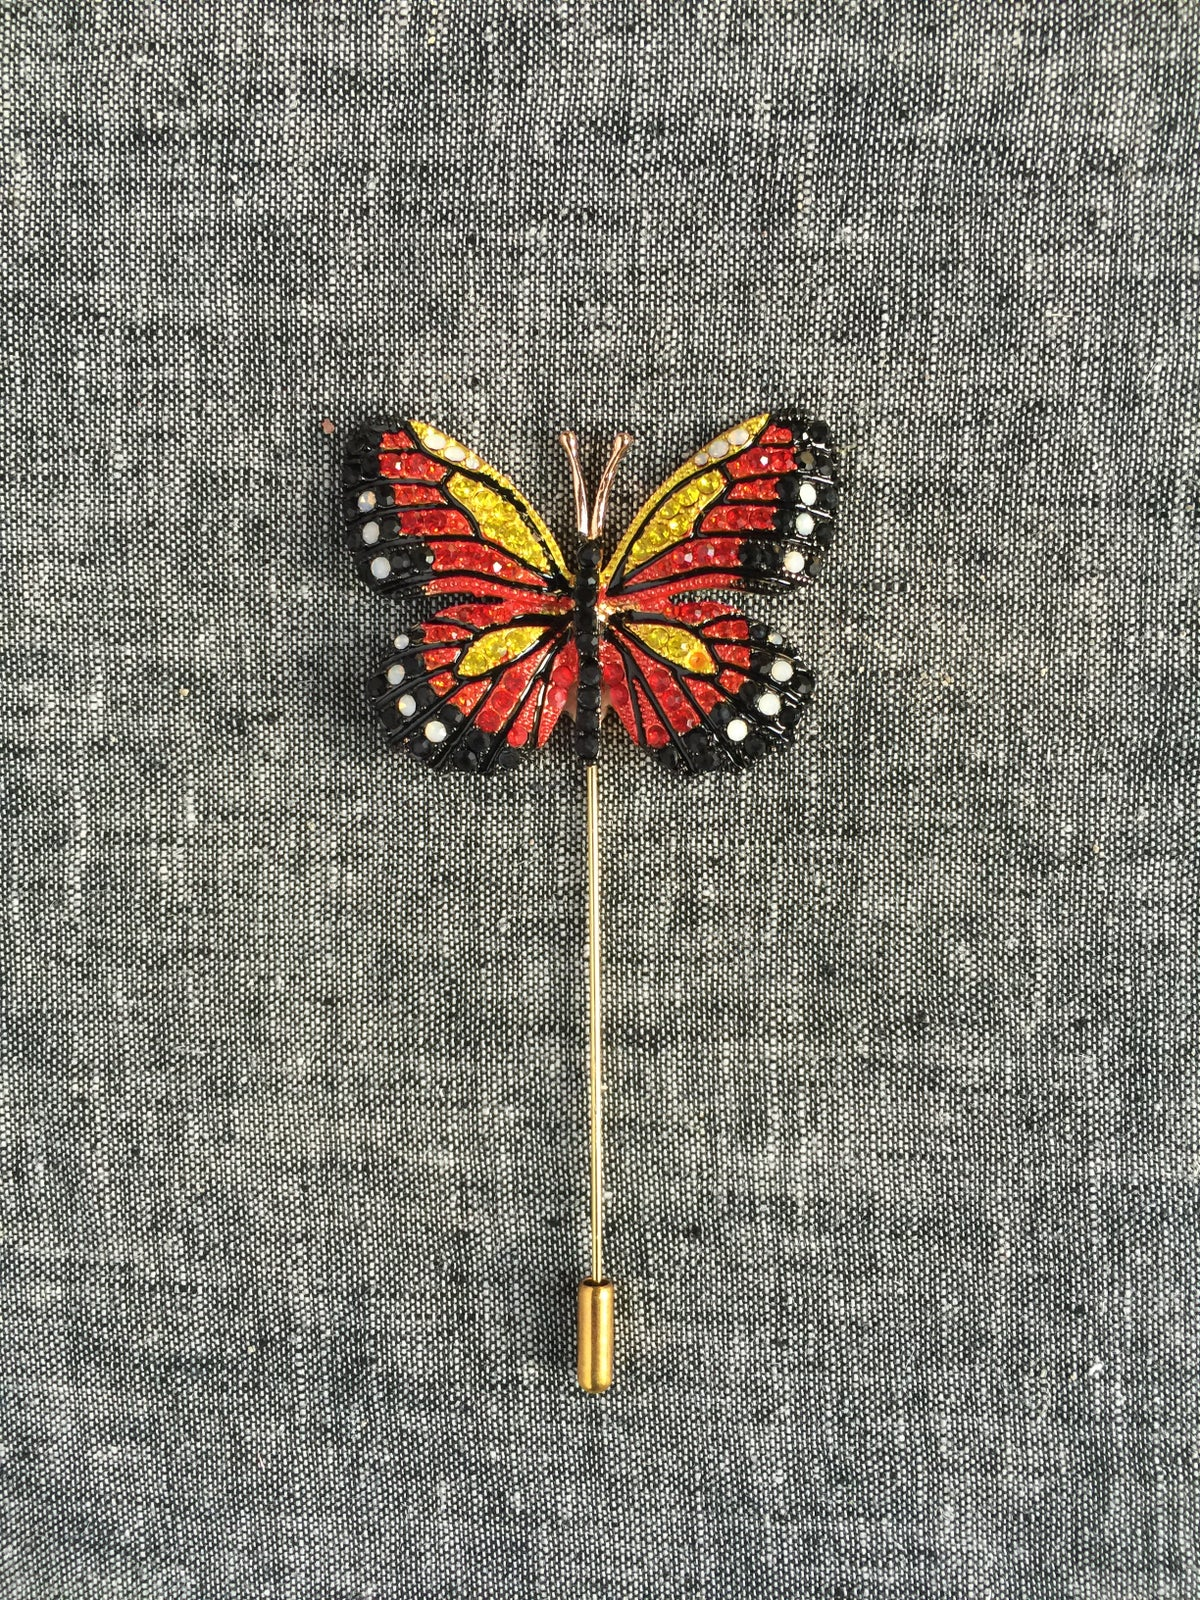 Image of Butterfly Lapel Pin (Red, Yellow, Black)